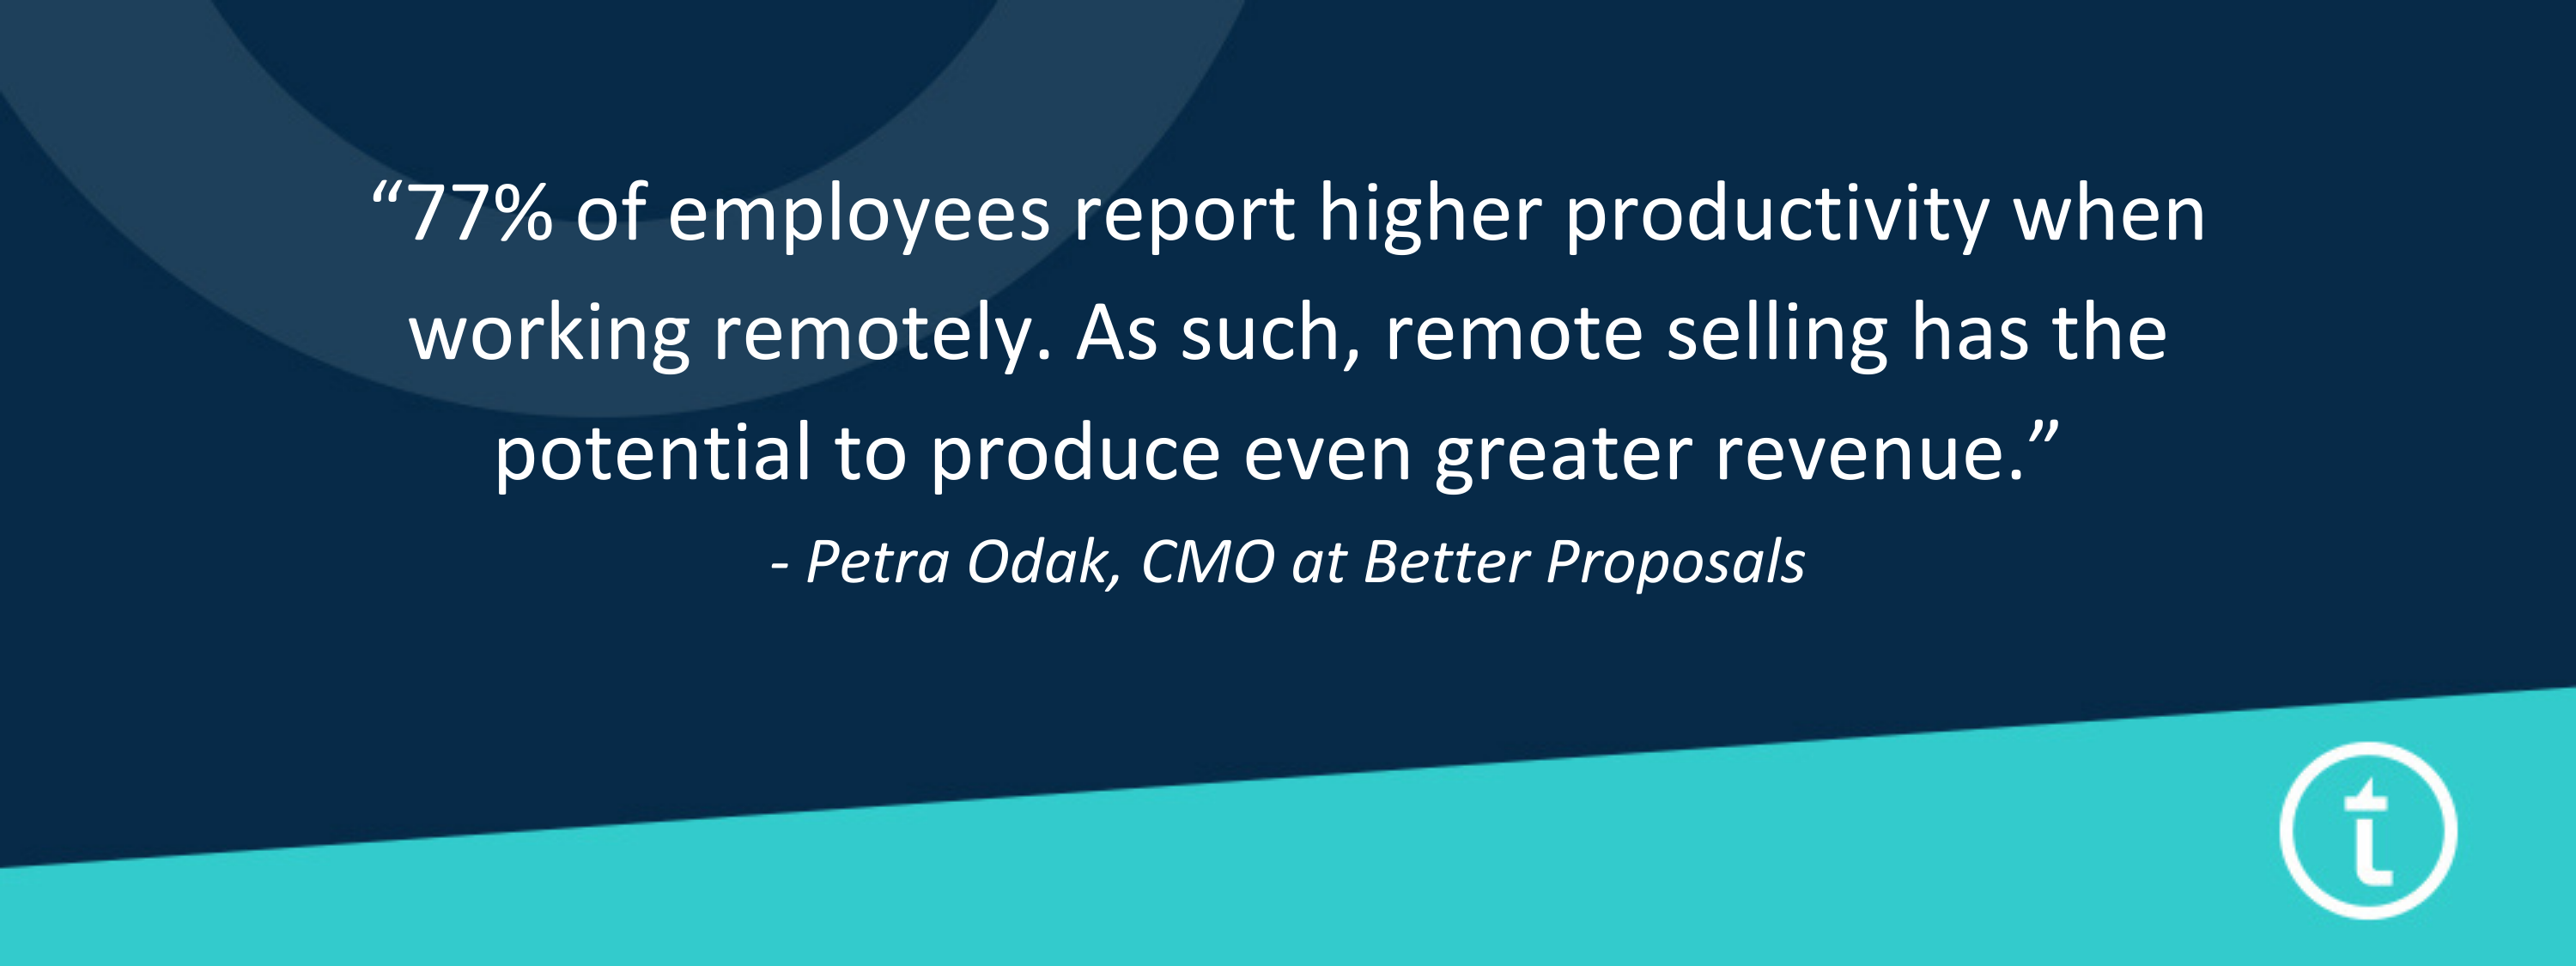 """""""77% of employees report higher productivity when working remotely. As such, remote selling has the potential to produce even greater revenue."""" - Petra Odak, CMO at Better Proposals"""